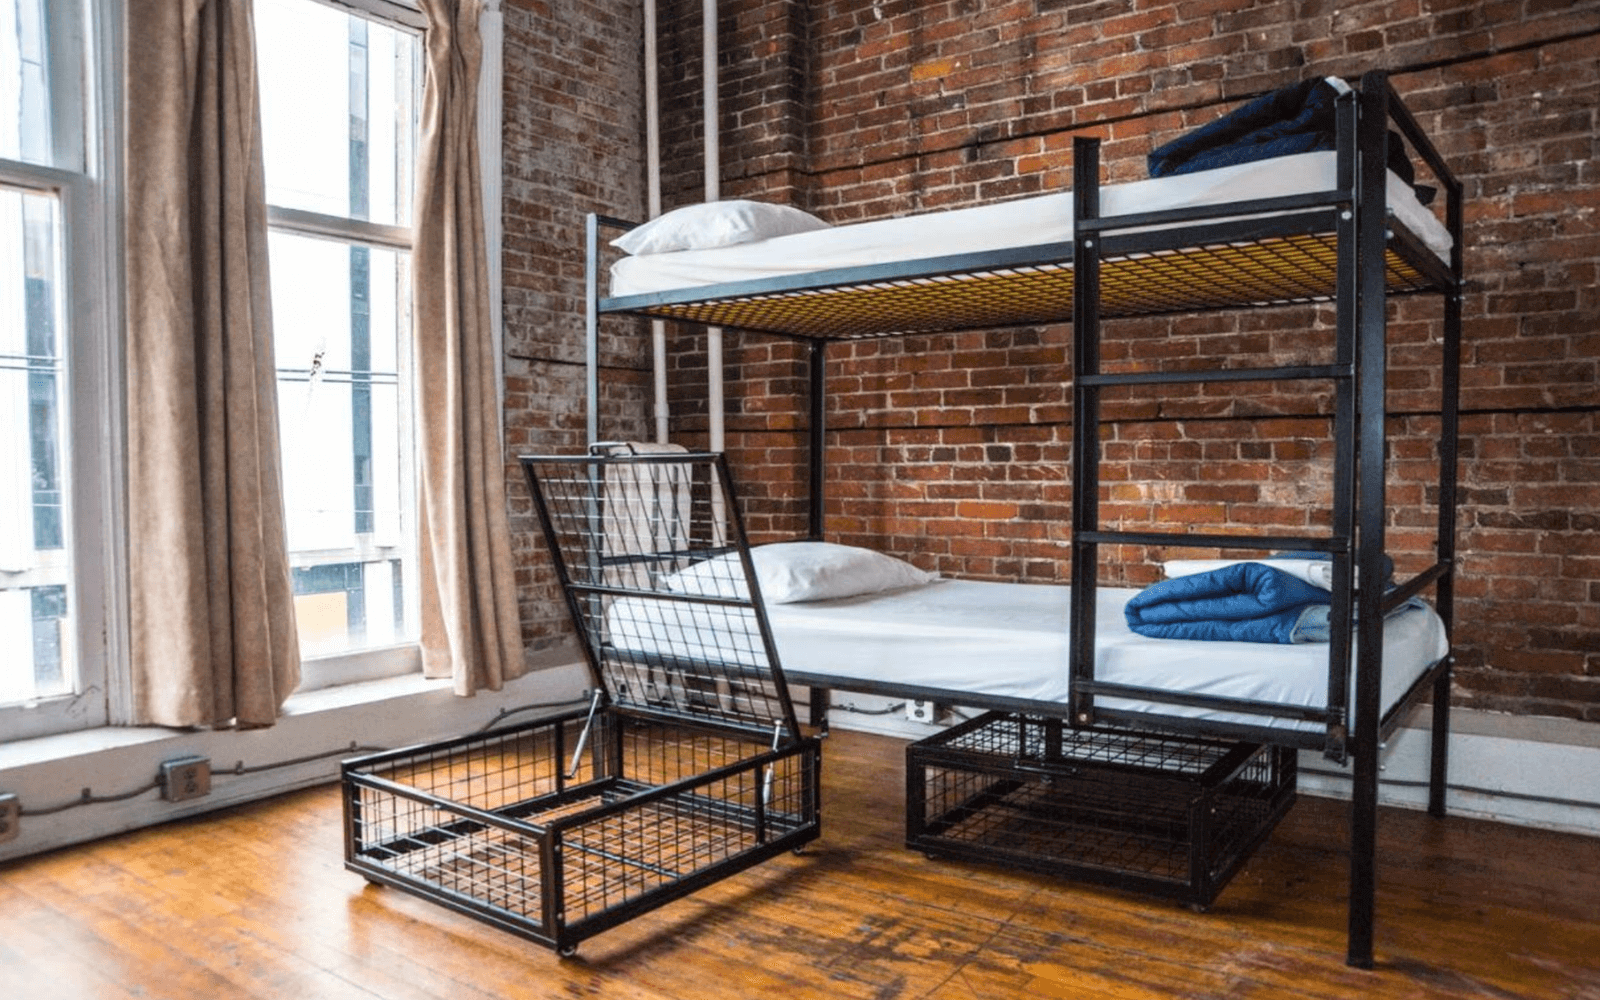 Dorm beds at the Cambie Gastown